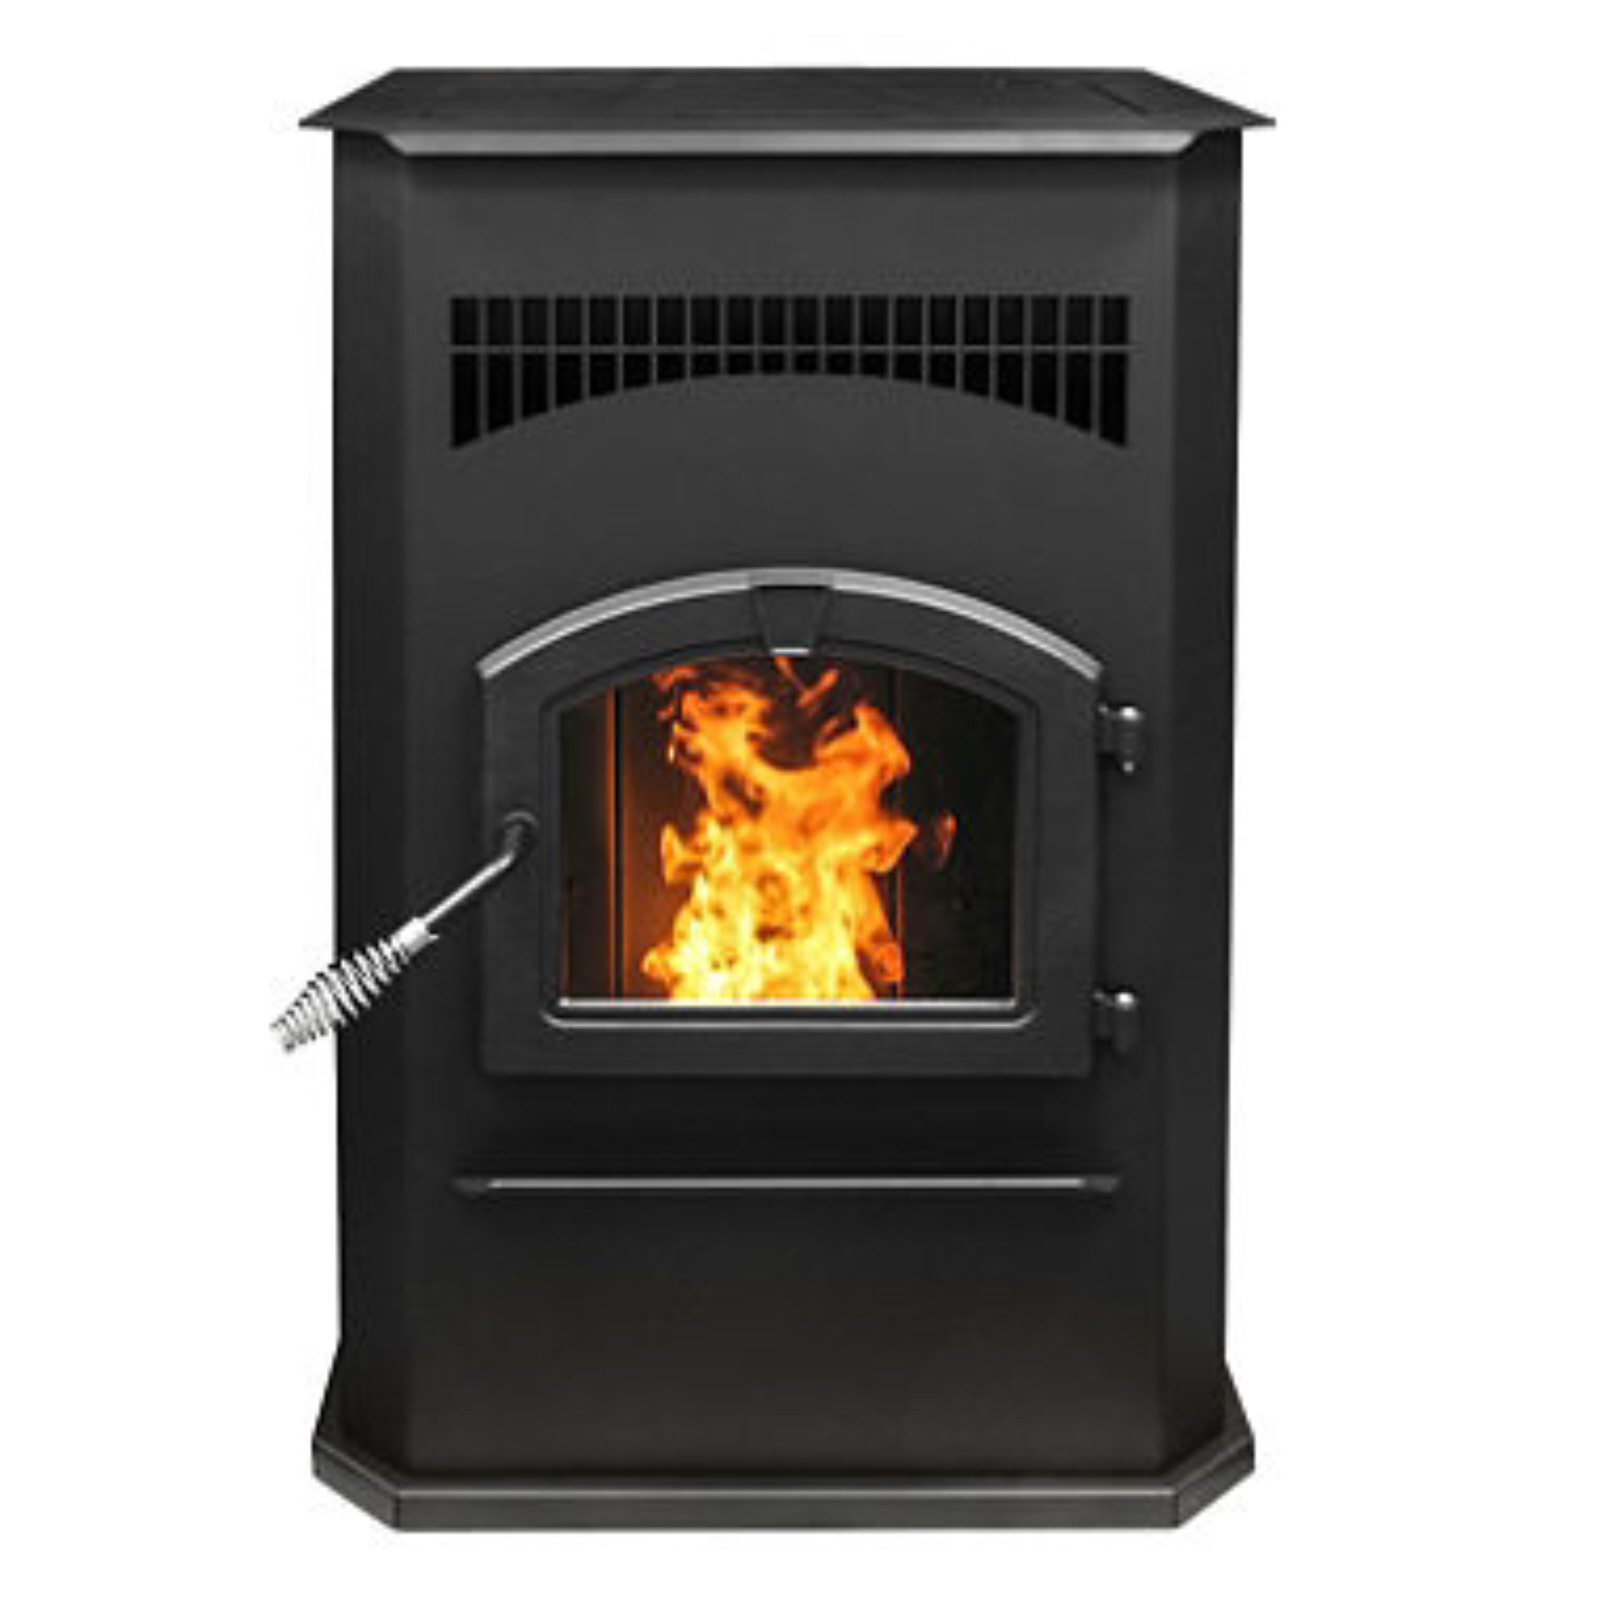 whitfield pellet stove how to start